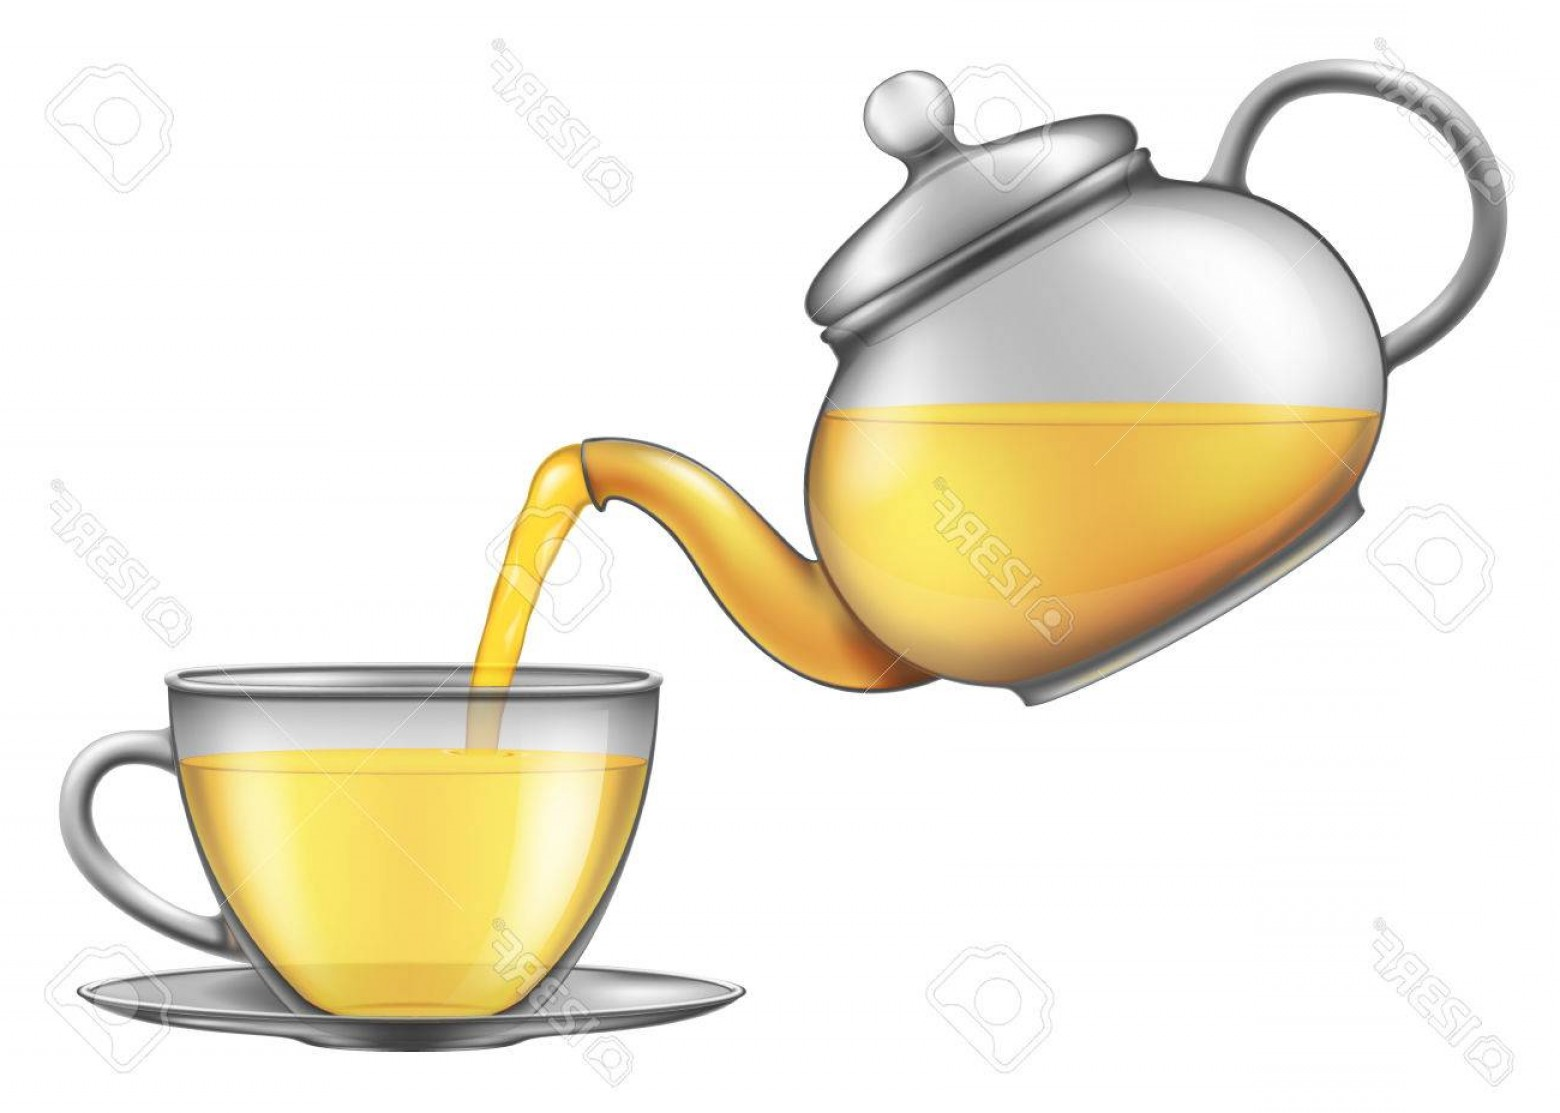 Teapot And Cup Vector: Photostock Vector Tea Pouring From Teapot Into A Cup Vector Illustration